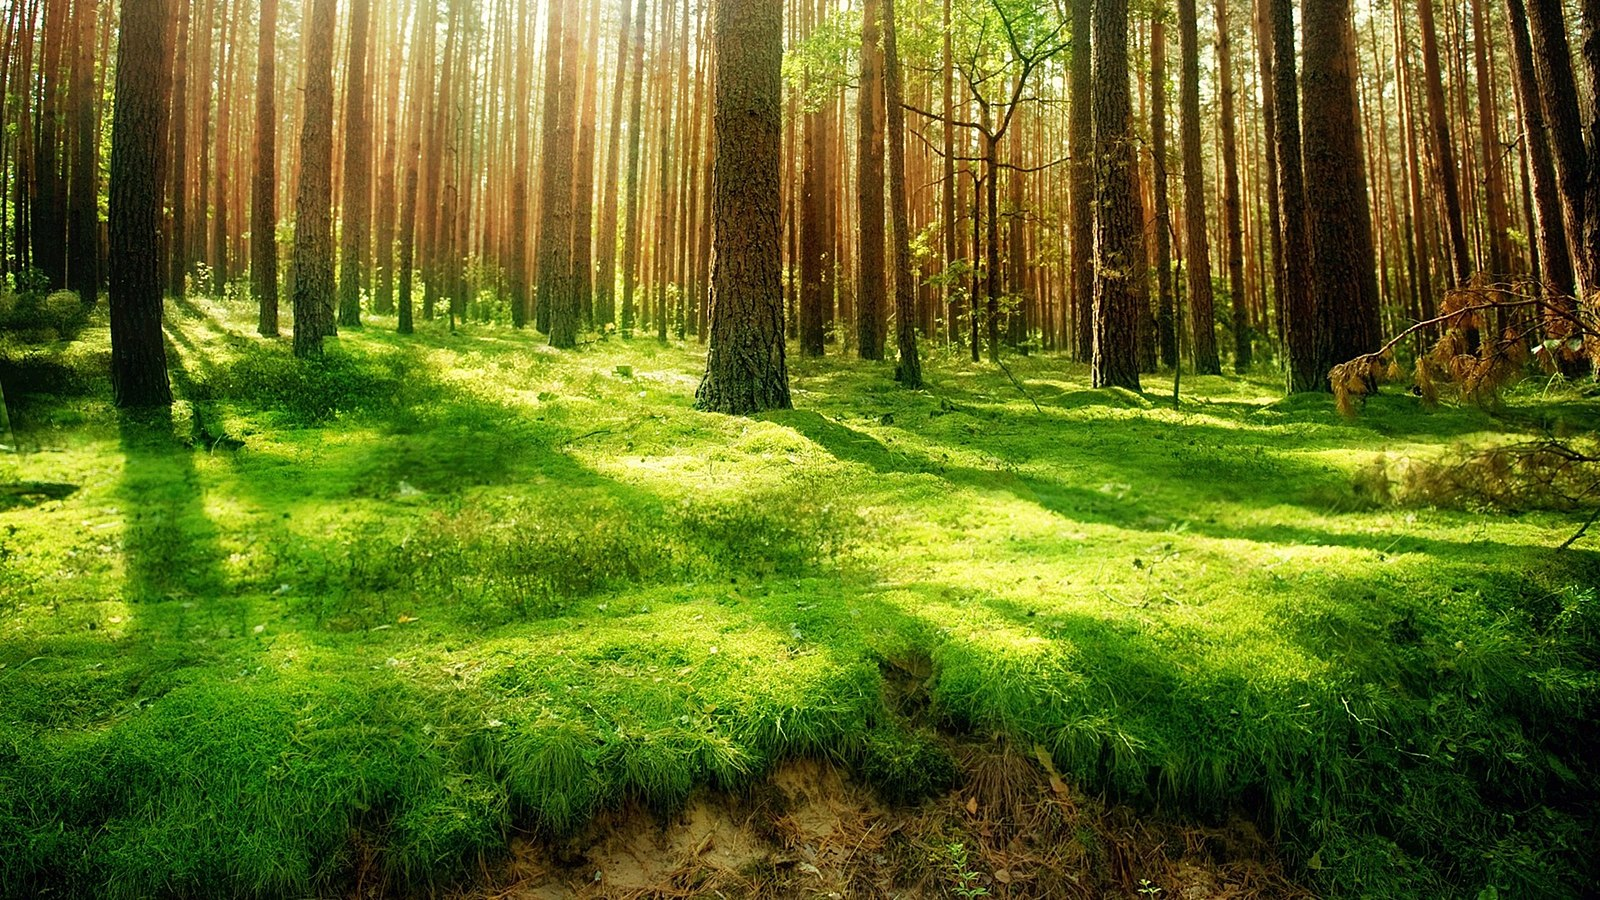 Sunlight passing through trees and onto moss covered forest ground